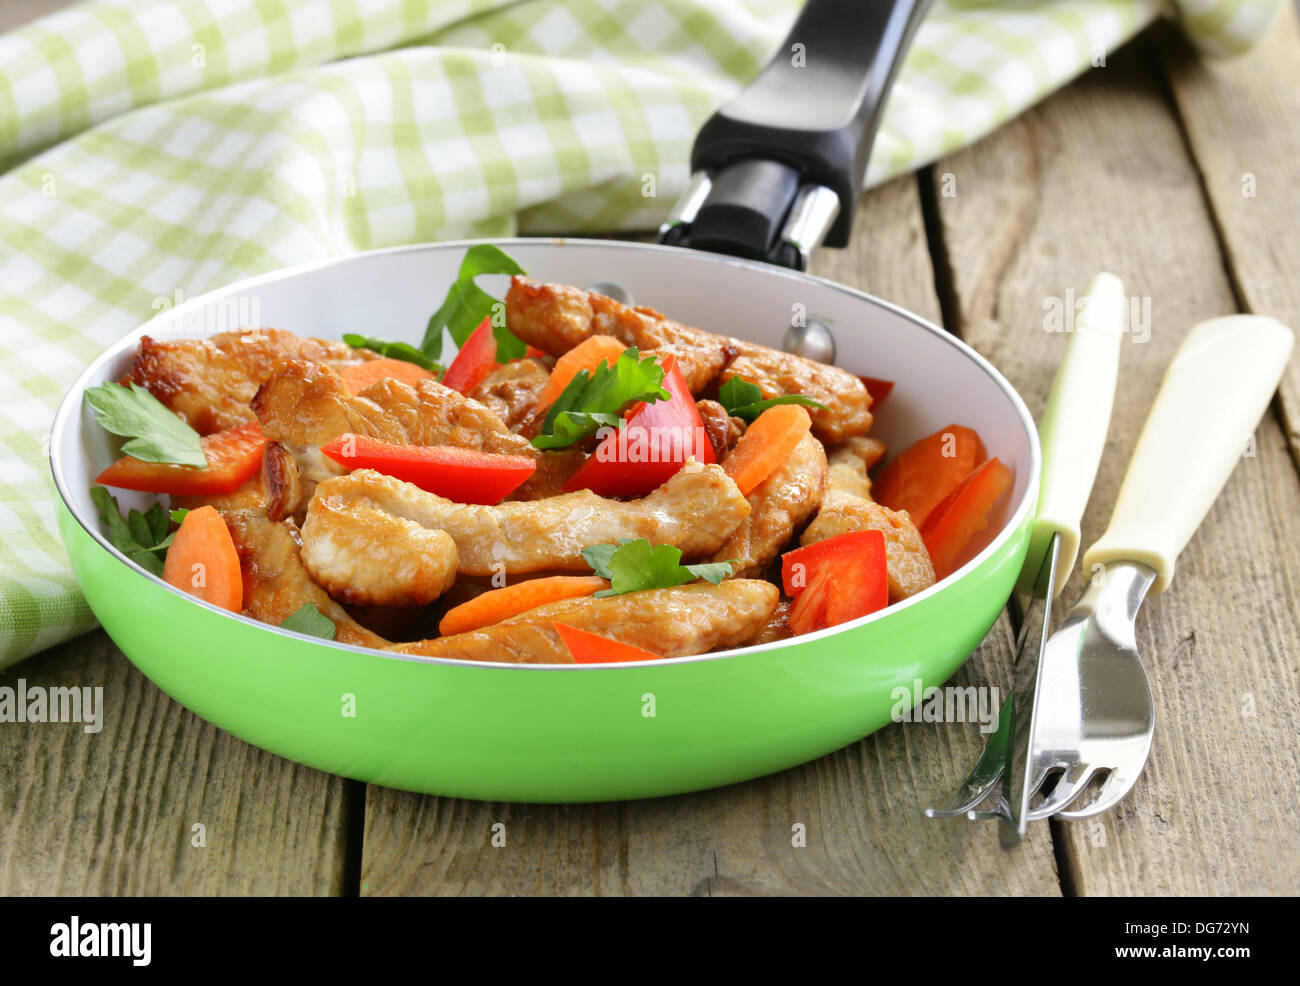 fried chicken (turkey) fillets with vegetables in a pan - Stock Image